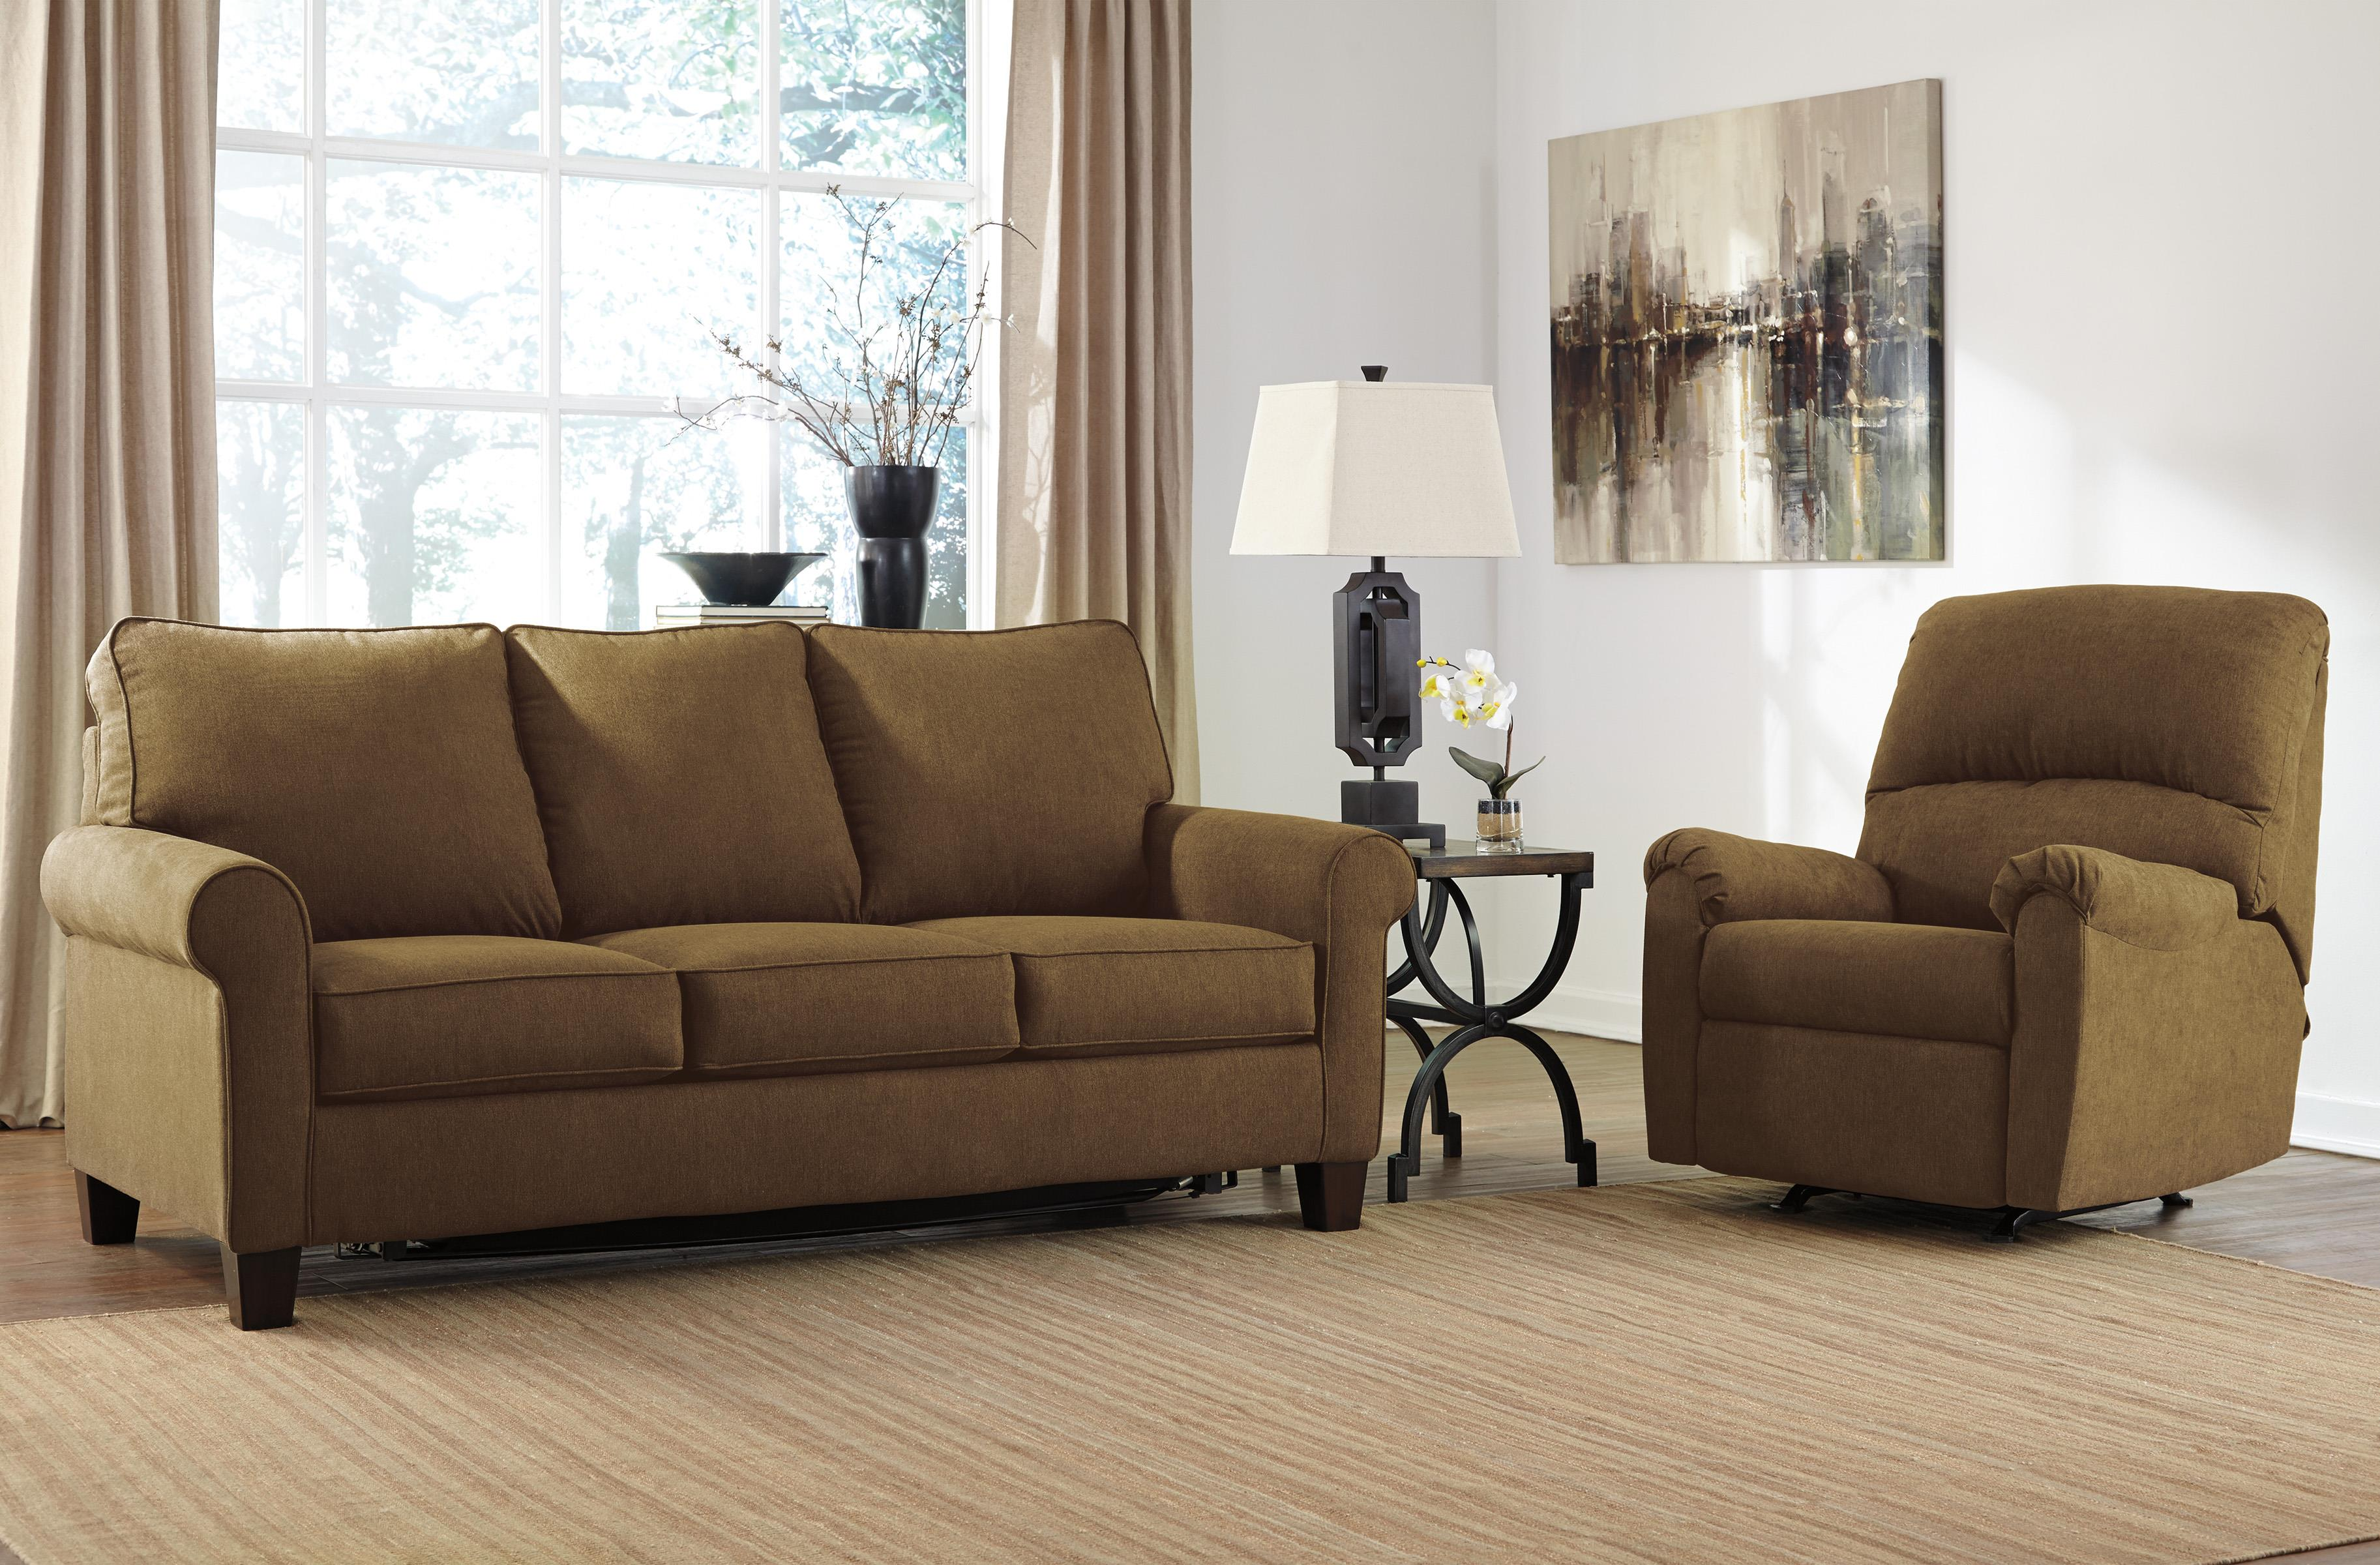 Signature Design by Ashley Zeth - Basil Stationary Living Room Group - Item Number: 27103 Living Room Group 1